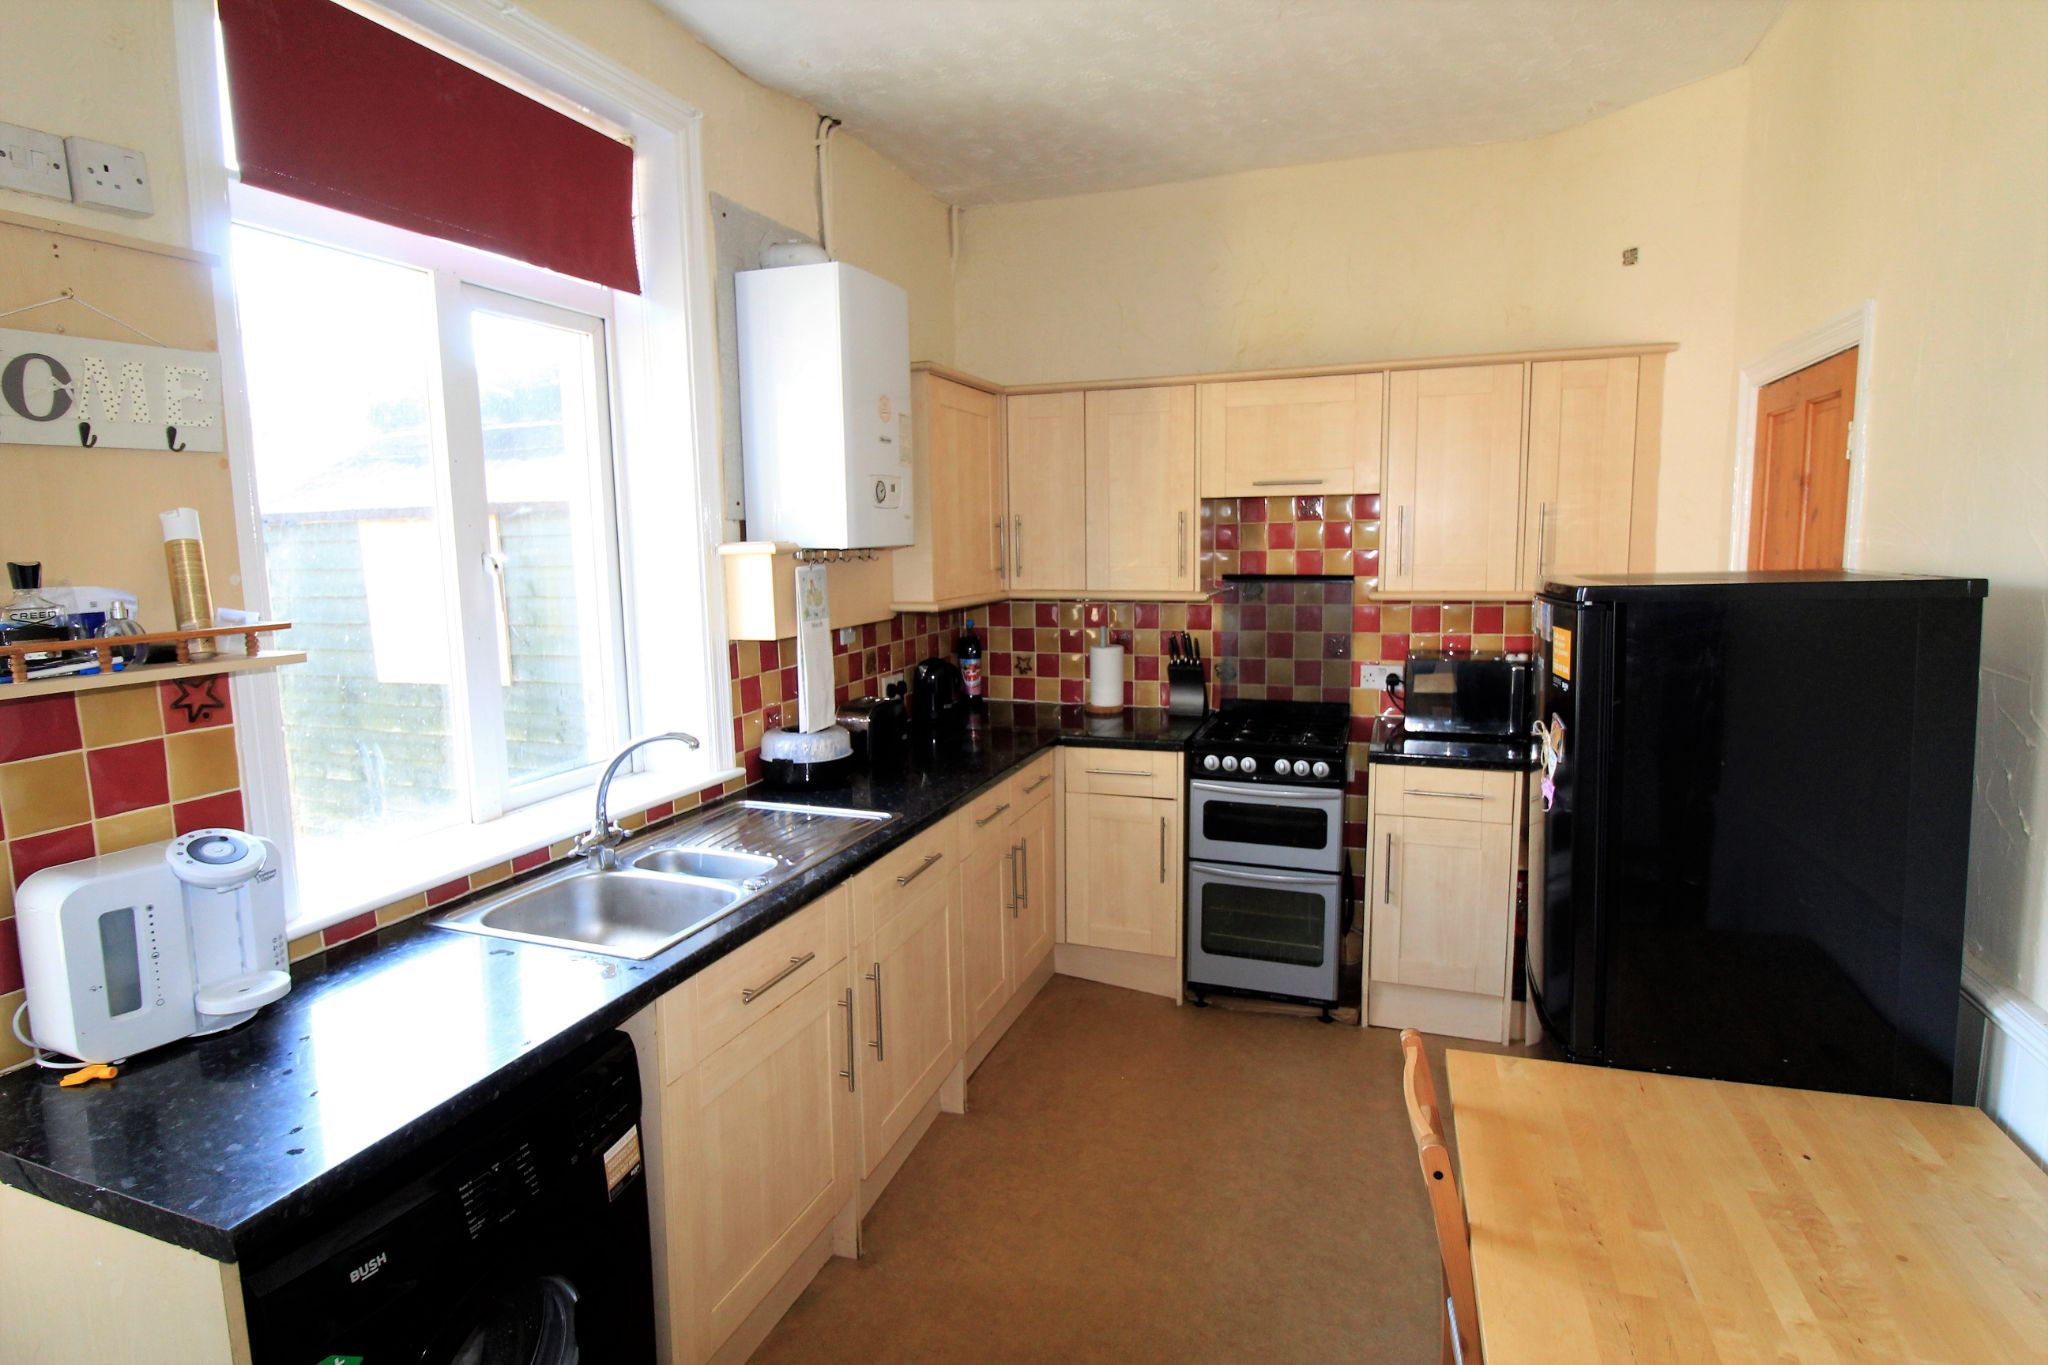 2 bedroom end terraced house SSTC in Brighouse - Photograph 2